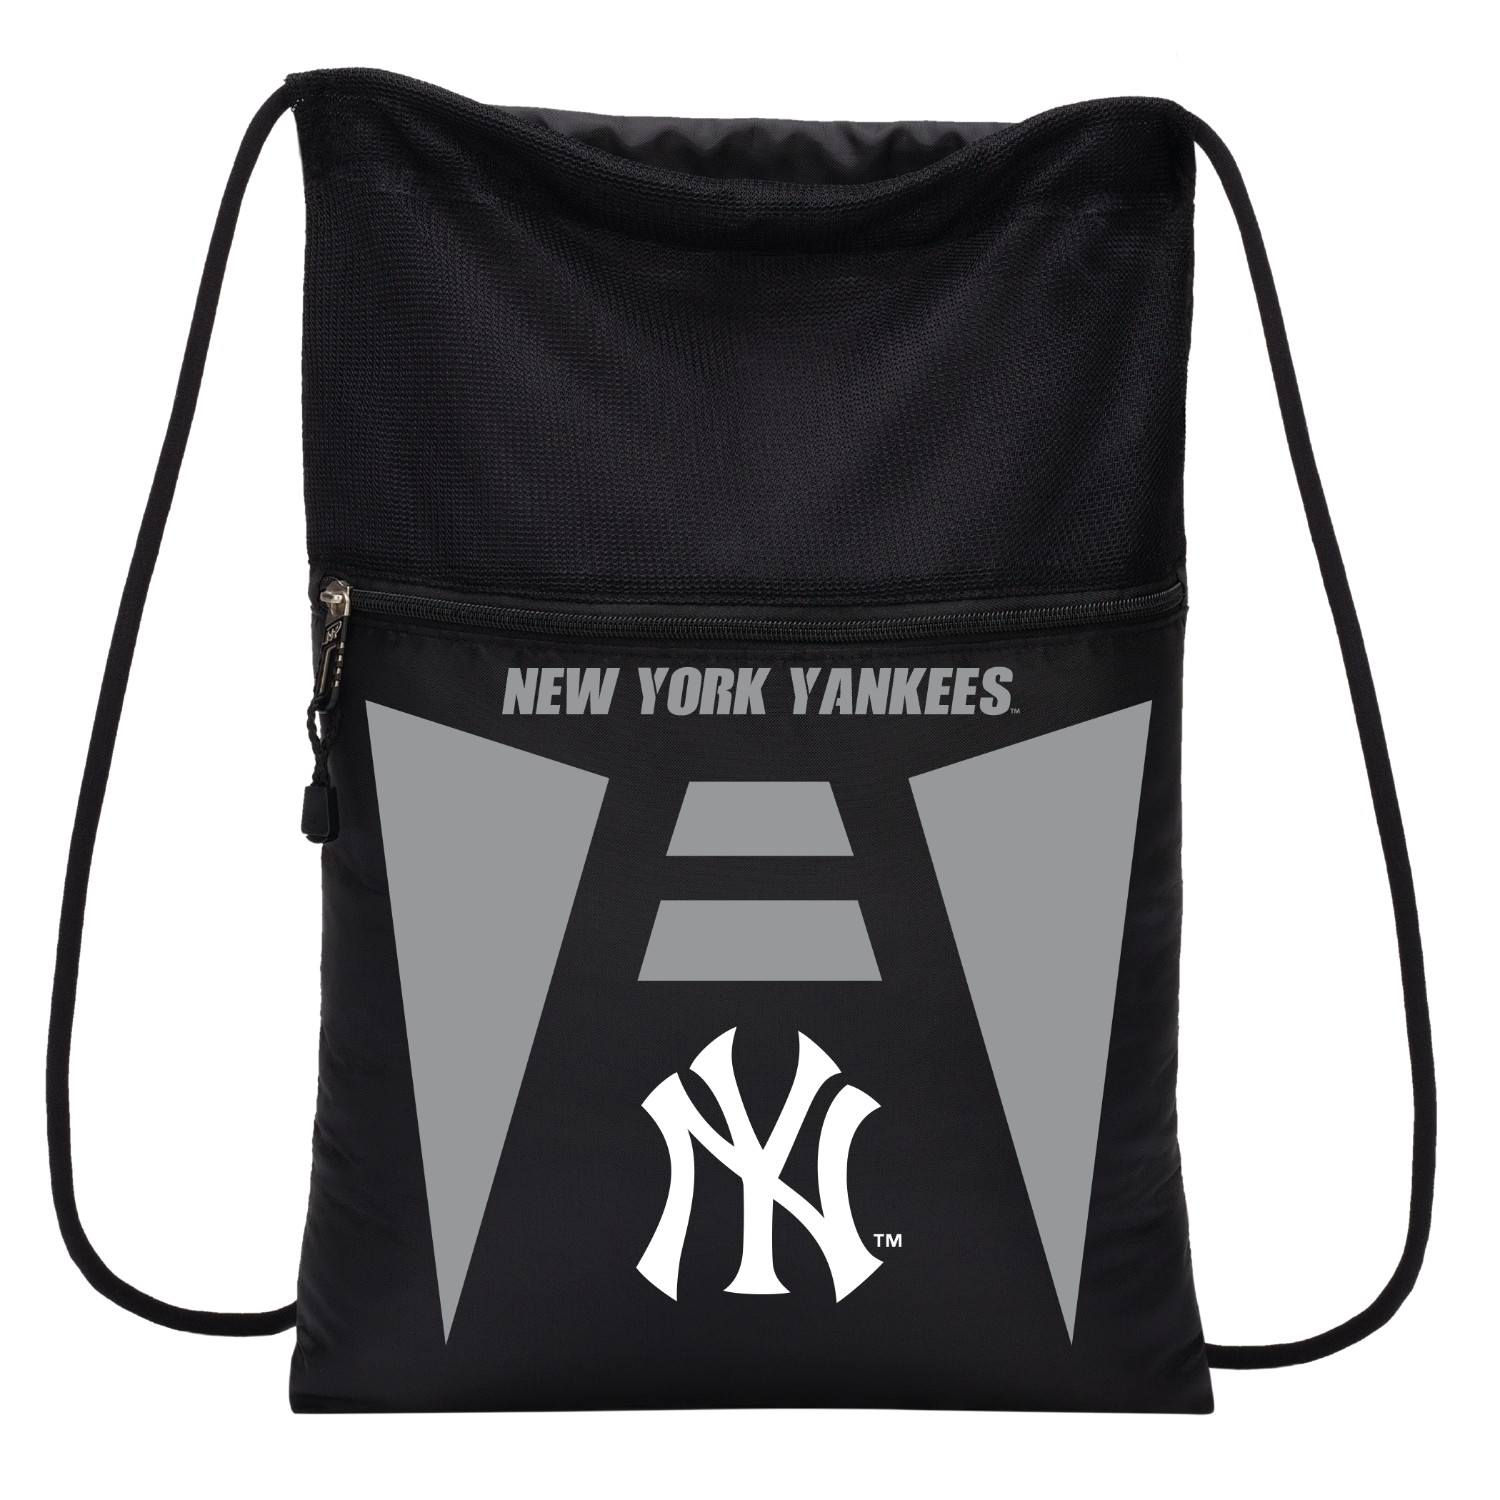 New York Yankees Team Tech Backsack